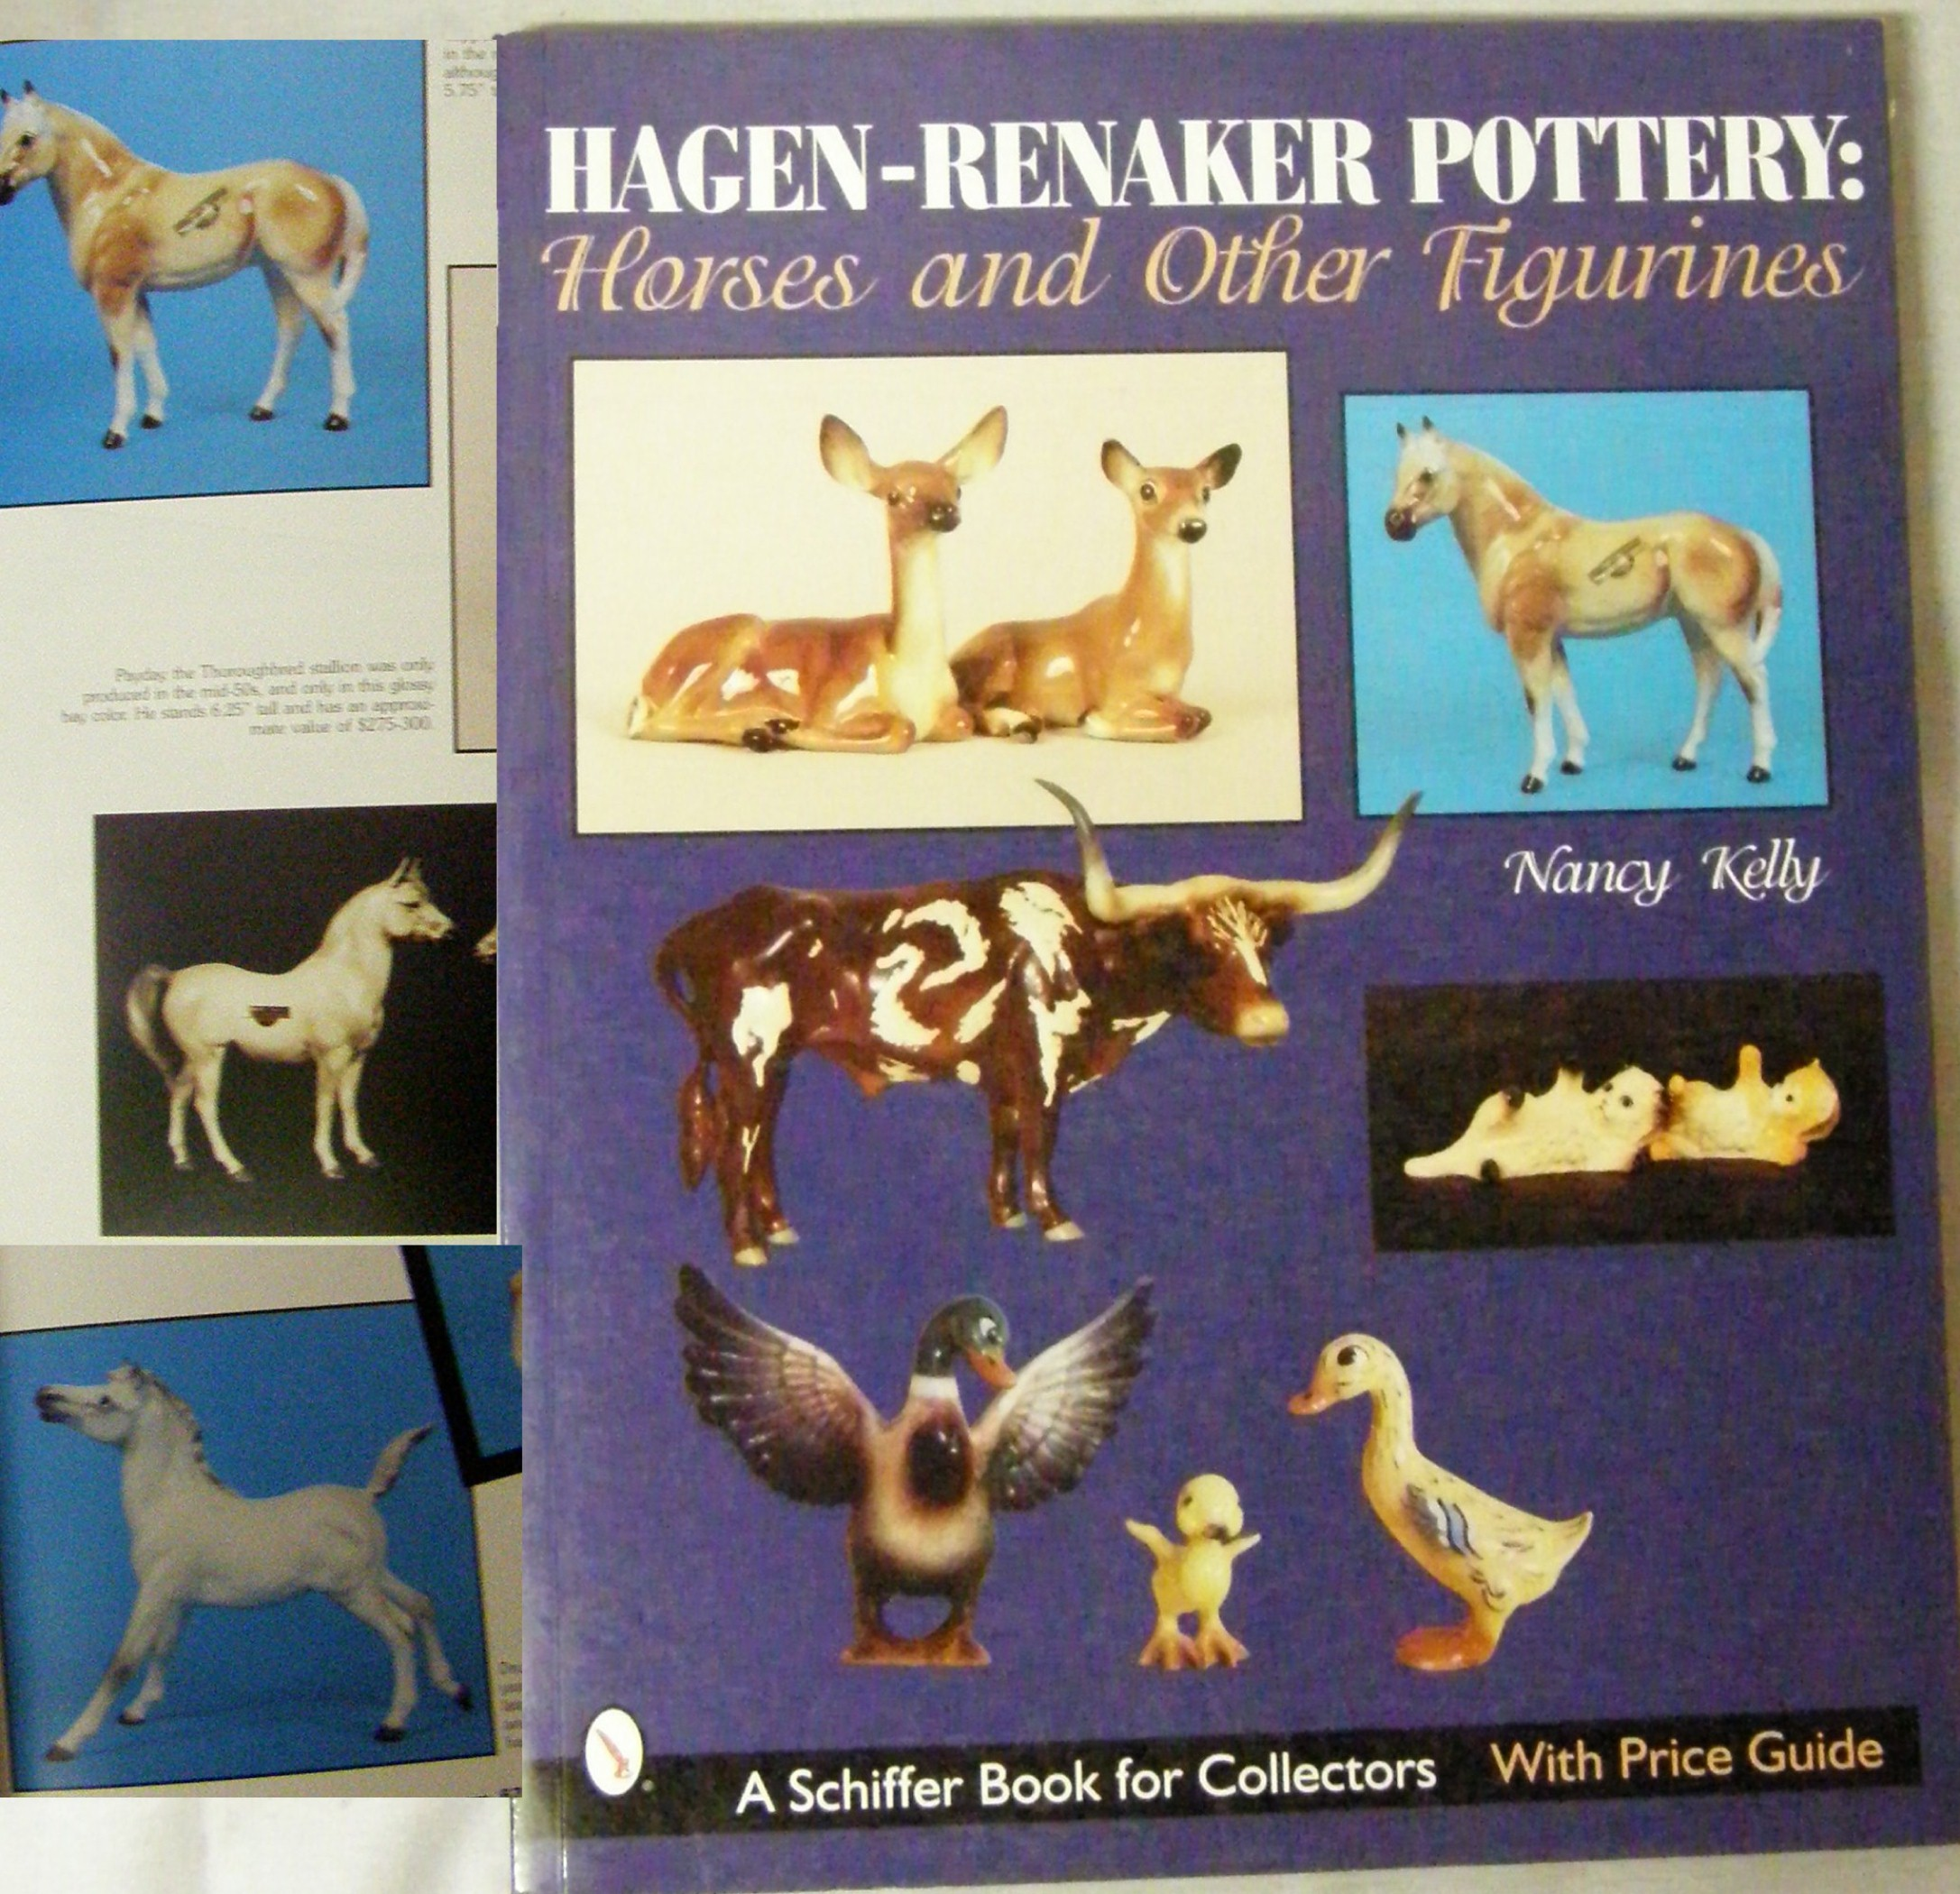 Hagen Renaker Pottery Horses and Other Figurines Schiffer Book for Collectors with Price Guide